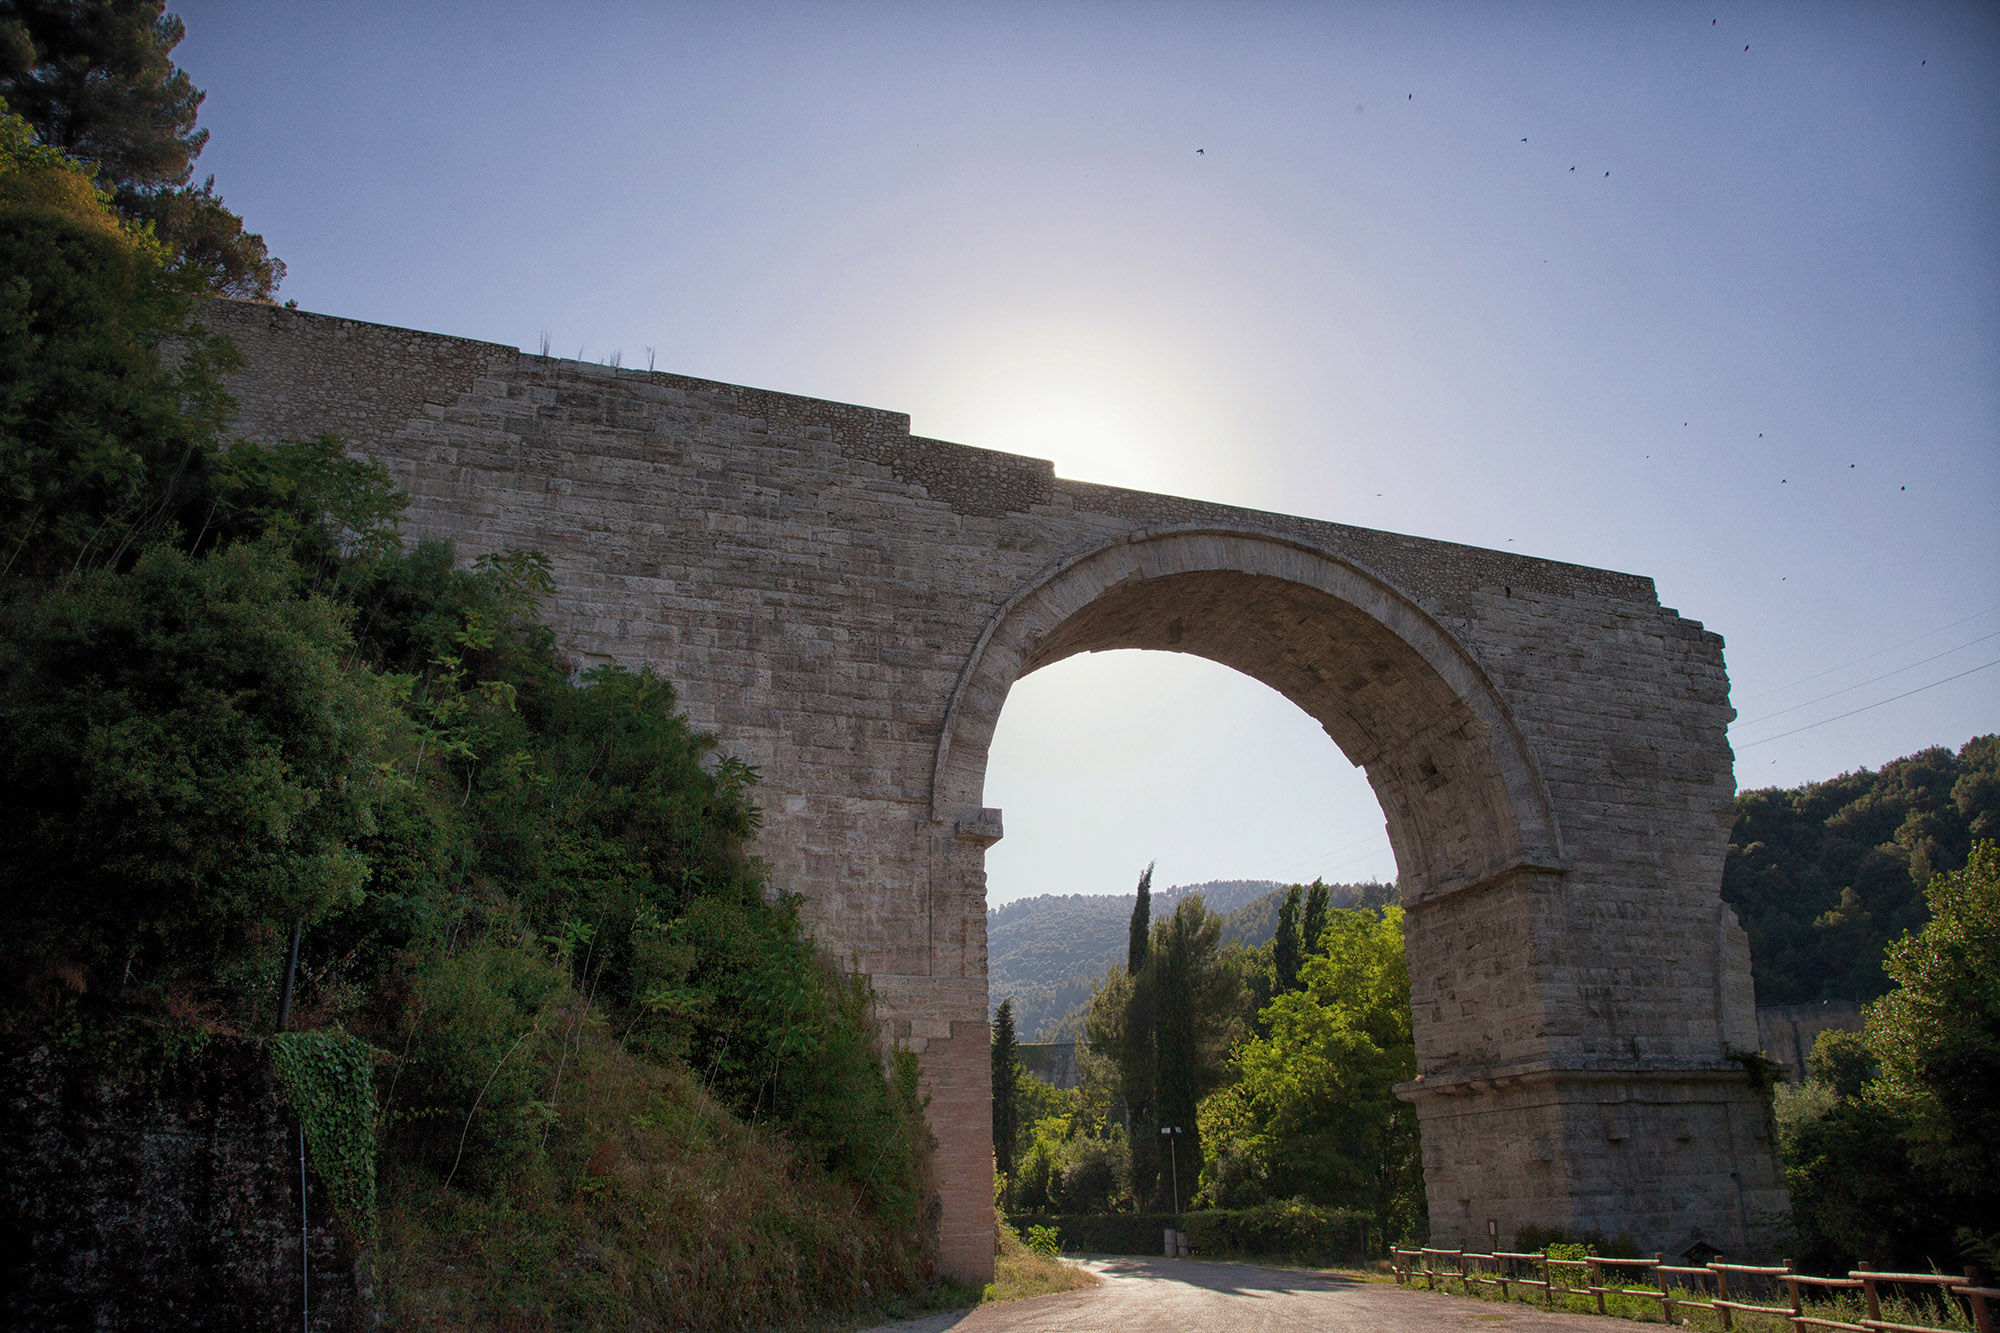 A weekend in the midst of nature and history, in Amelia, Narni, and more